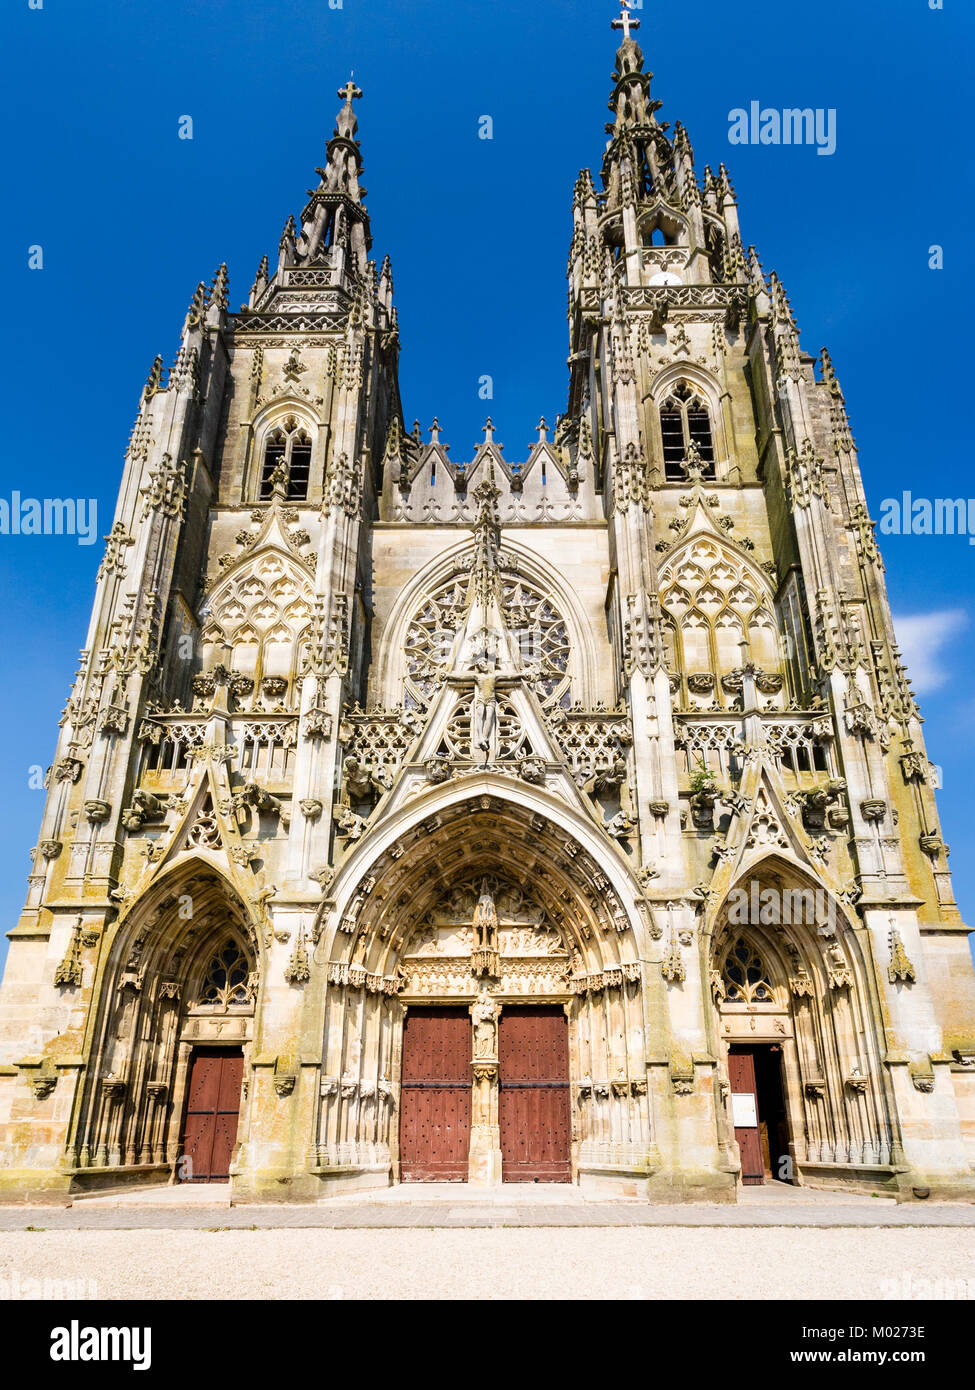 Travel to France - Basilique Notre-Dame de l'Epine (Basilica of Our Lady of the Thorn) in commune of L'Epine, - Stock Image